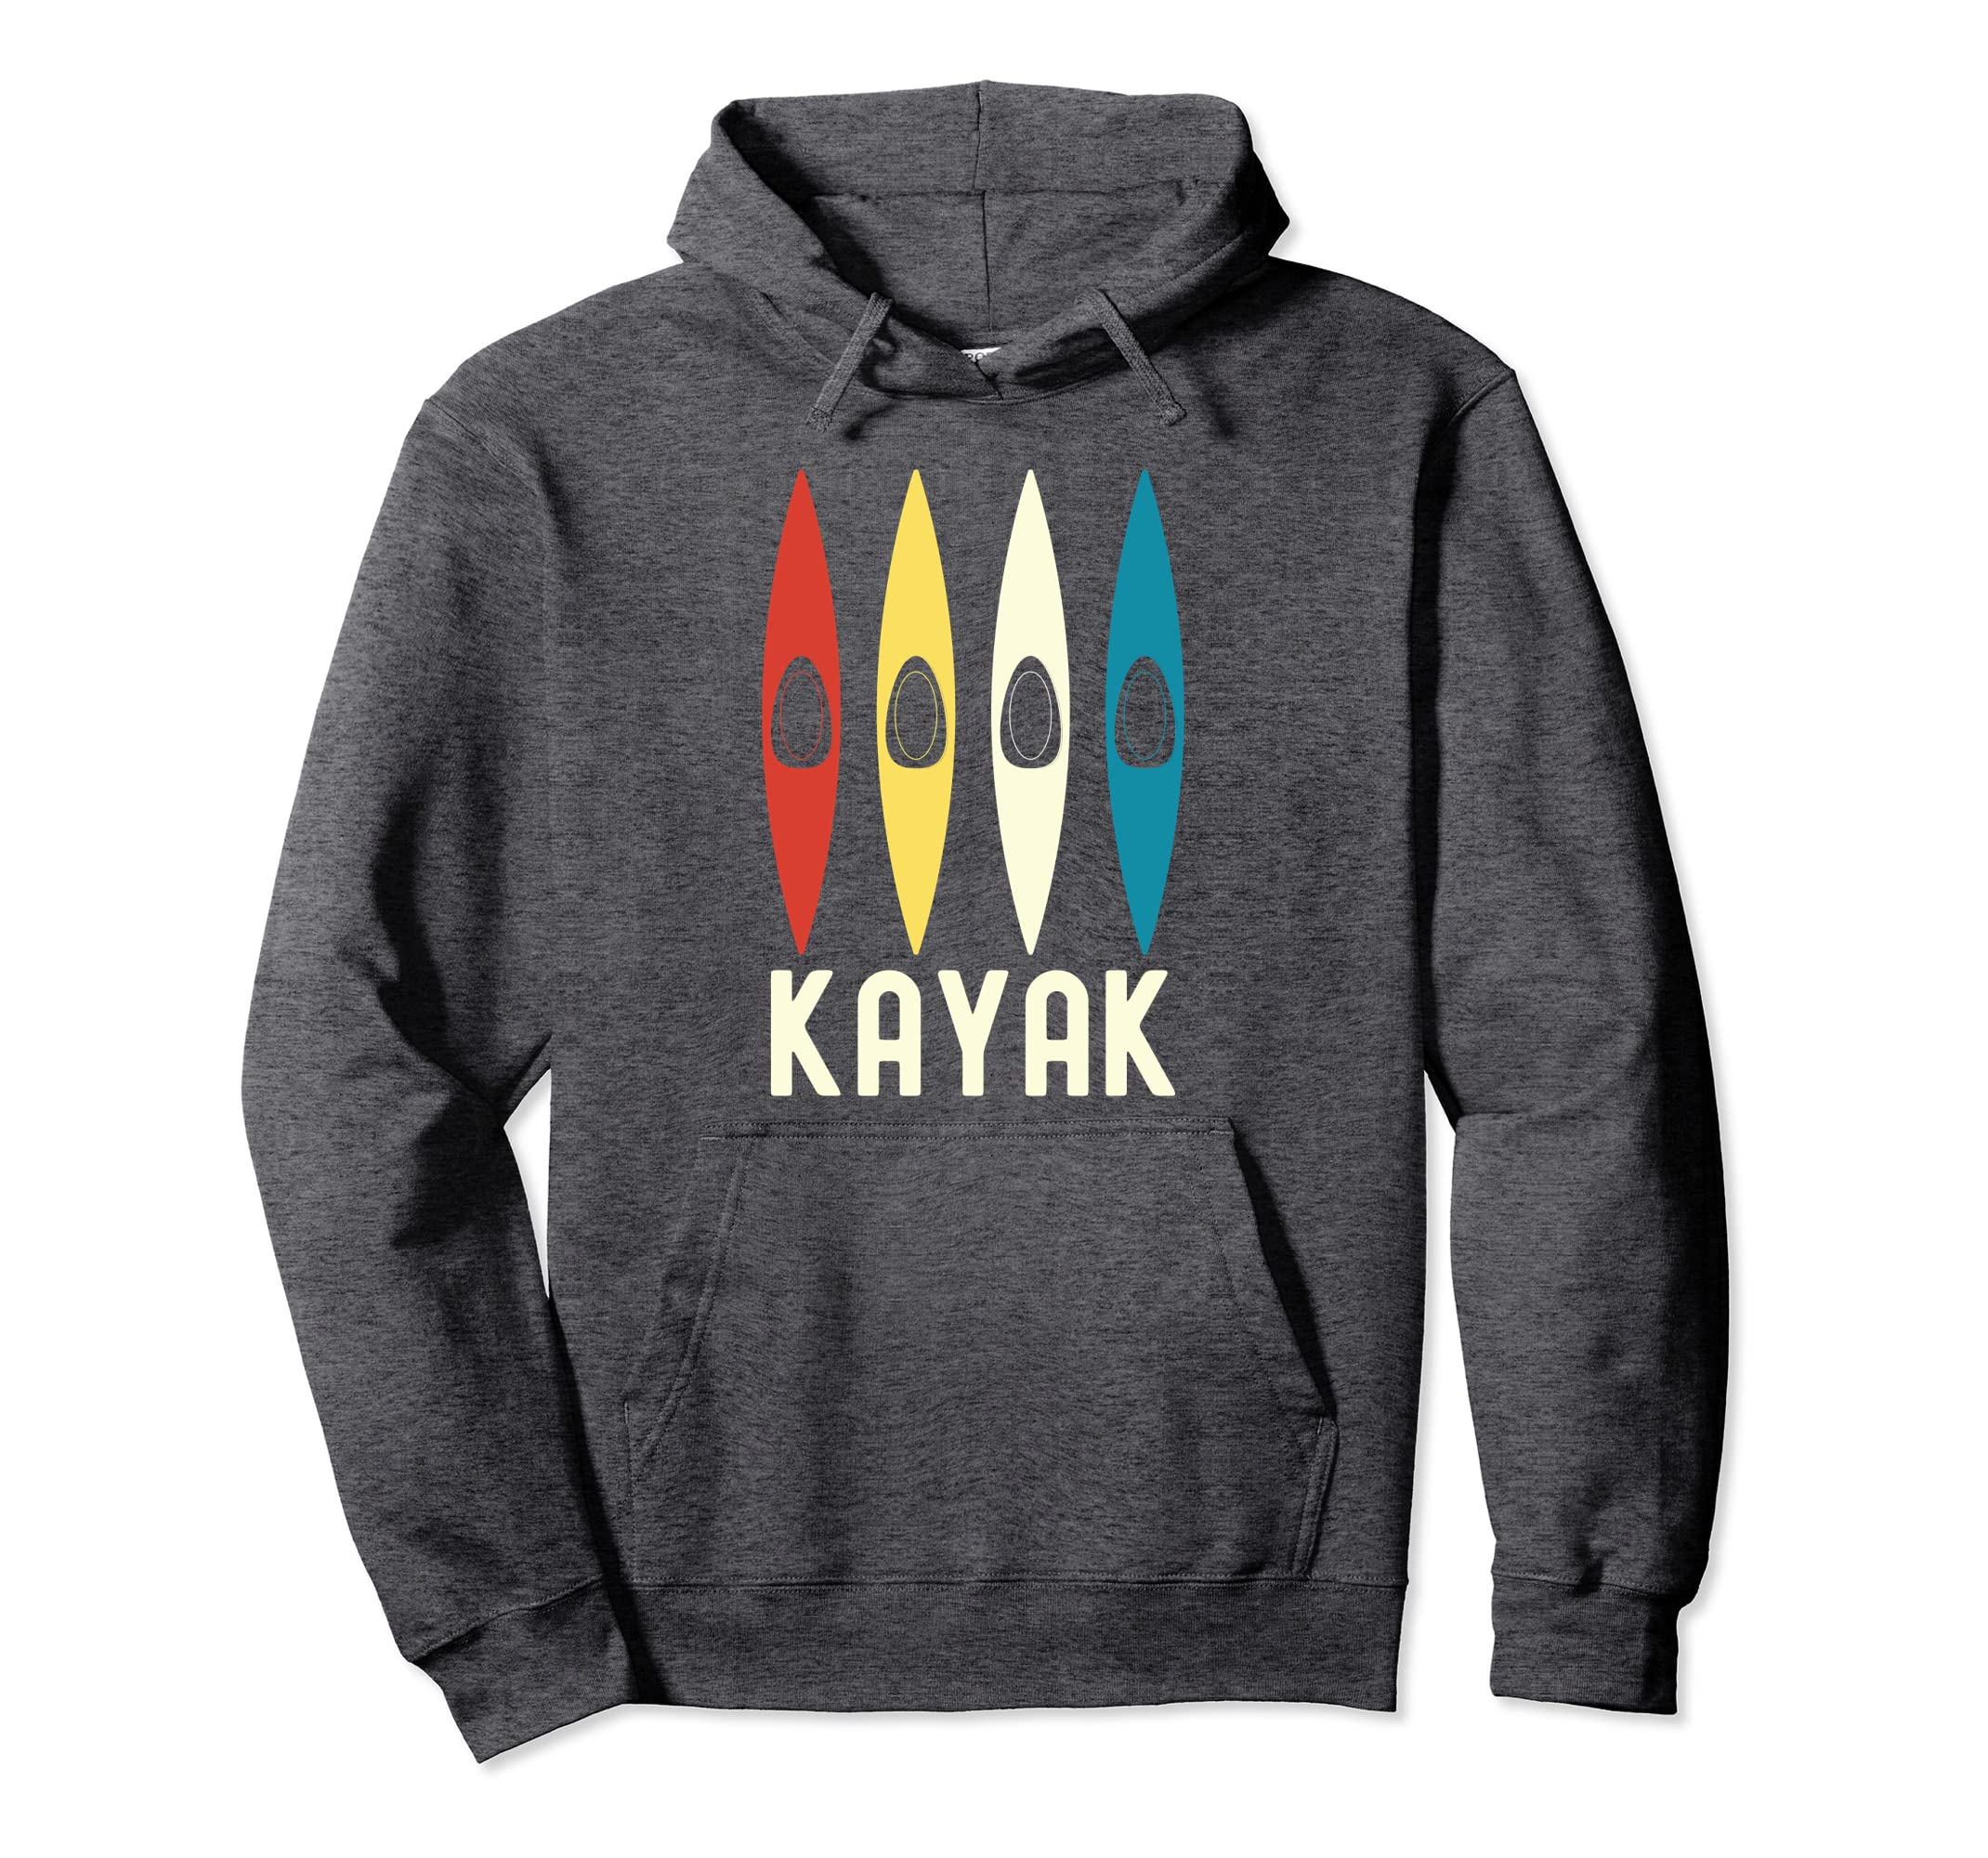 Amazoncom Kayak Kayaking Vintage Hoodie Gift For Kayaker